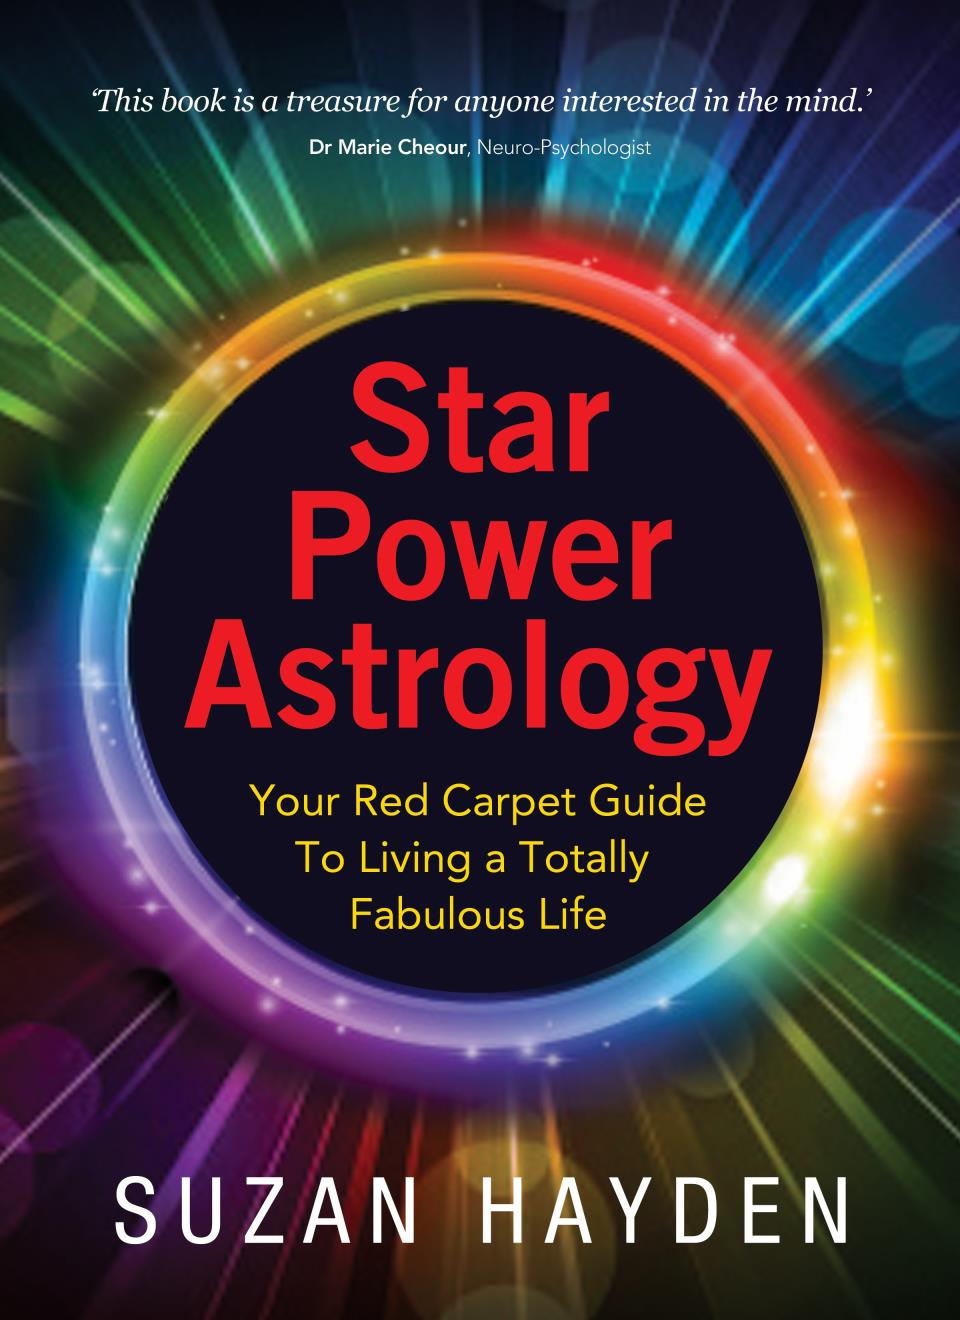 STAR POWER ASTROLOGY Your Red Carpet Guide To Living A Totally Fabulous Life